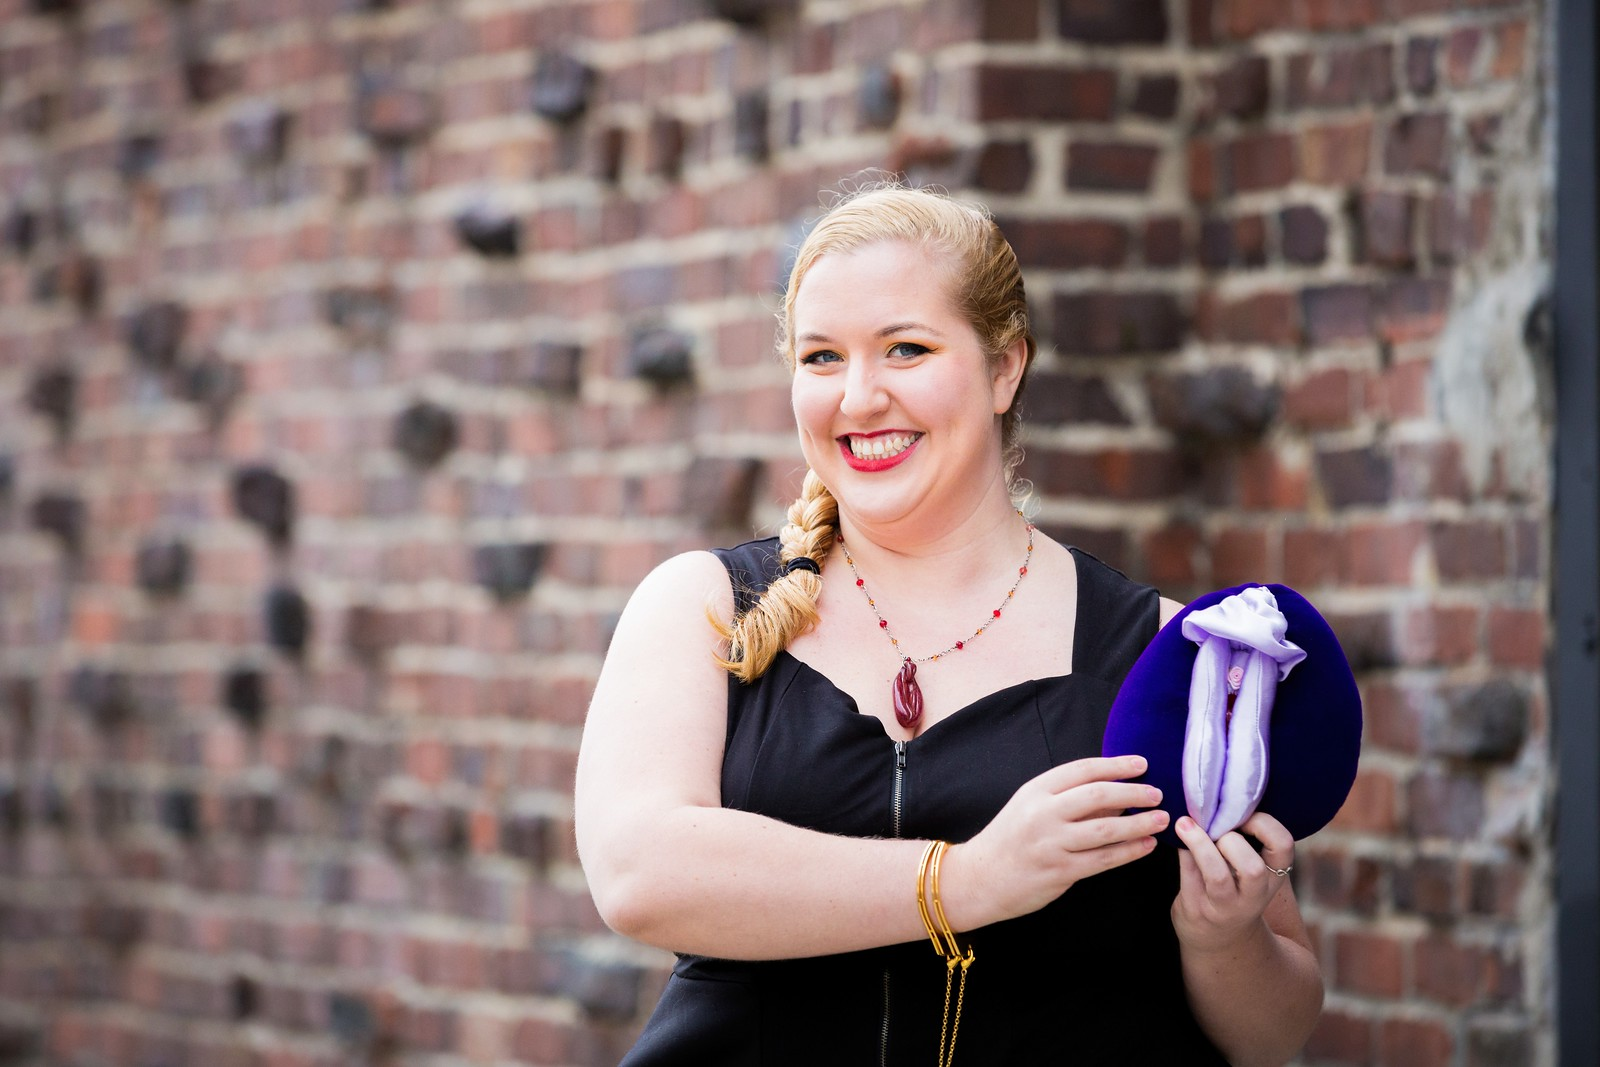 Image of a feminine person with blonde hair in a side braid, red lipstick, gold handcuff bracelets, and a black top, standing in front of a brick wall holding a purple plush vulva puppet.